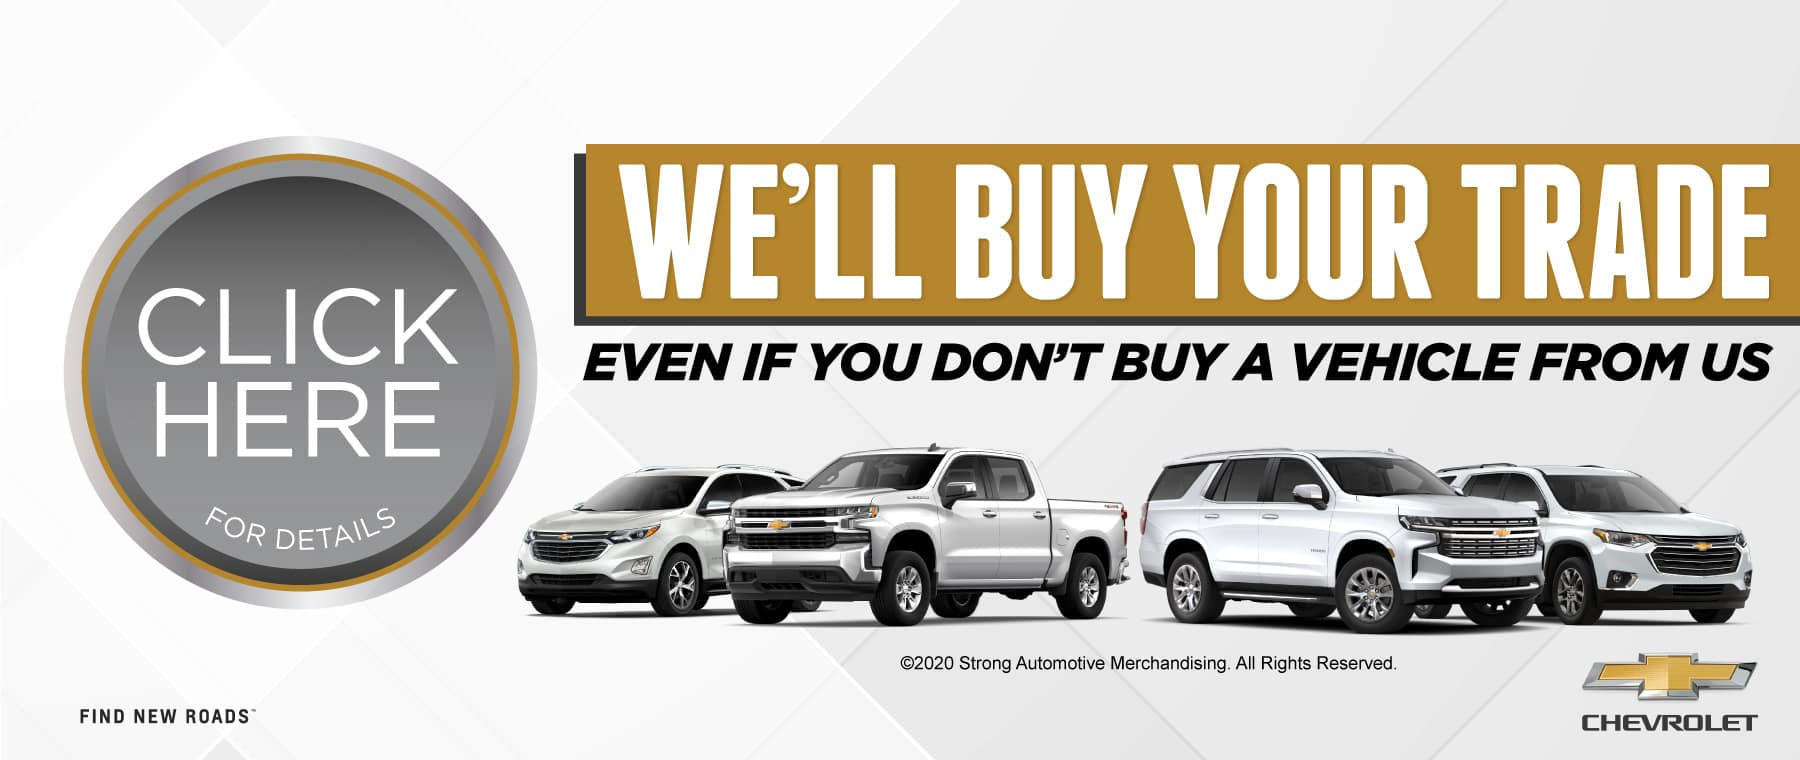 We'll buy your trade even if you don't buy ours | Act Now